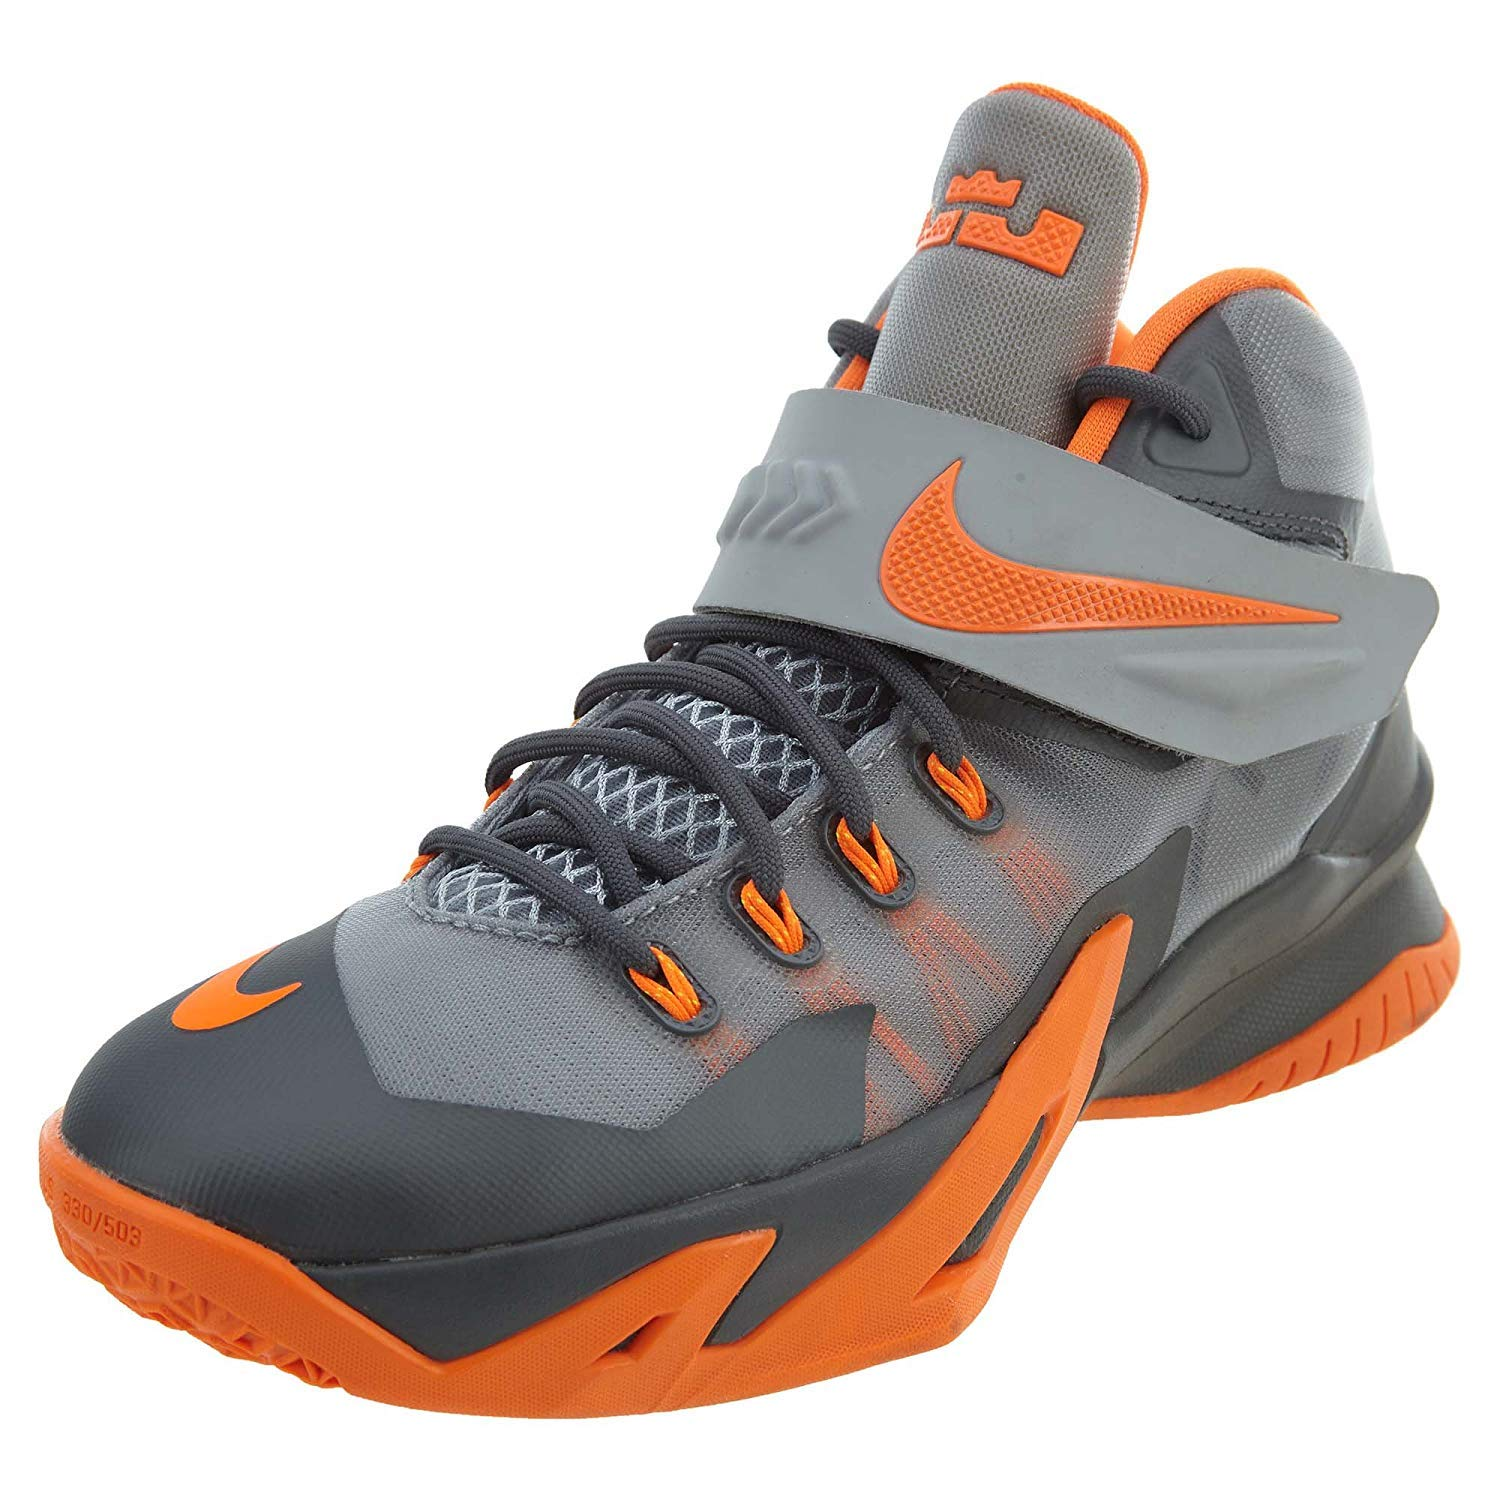 on sale 1385a 6134e Soldier Viii Gs 8 Lebron James Youth Basketball Shoes 653645-010 (6y)   Amazon.co.uk  Shoes   Bags